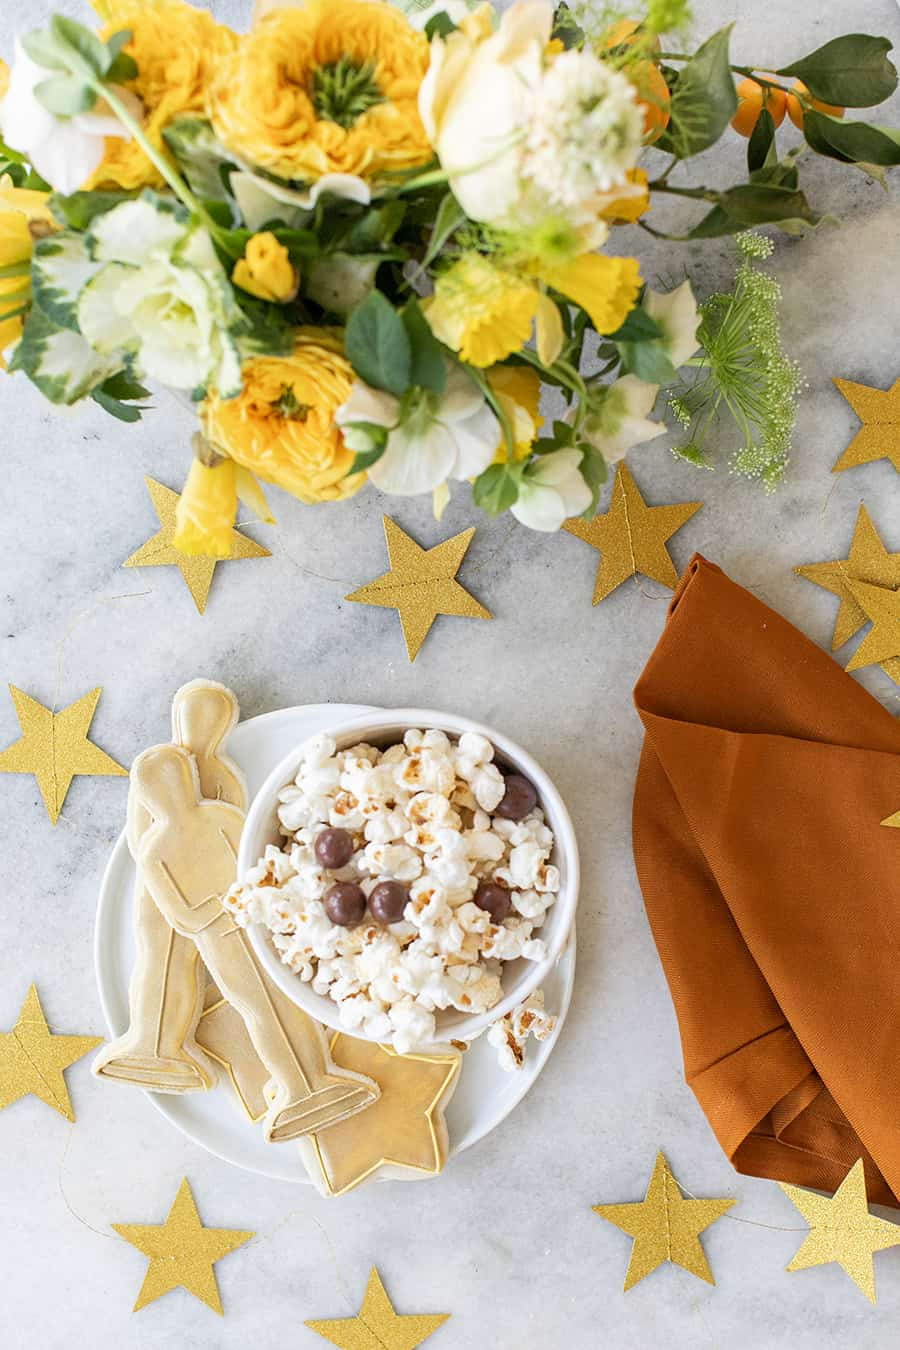 Popcorn and Oscar party cookies with gold stars.